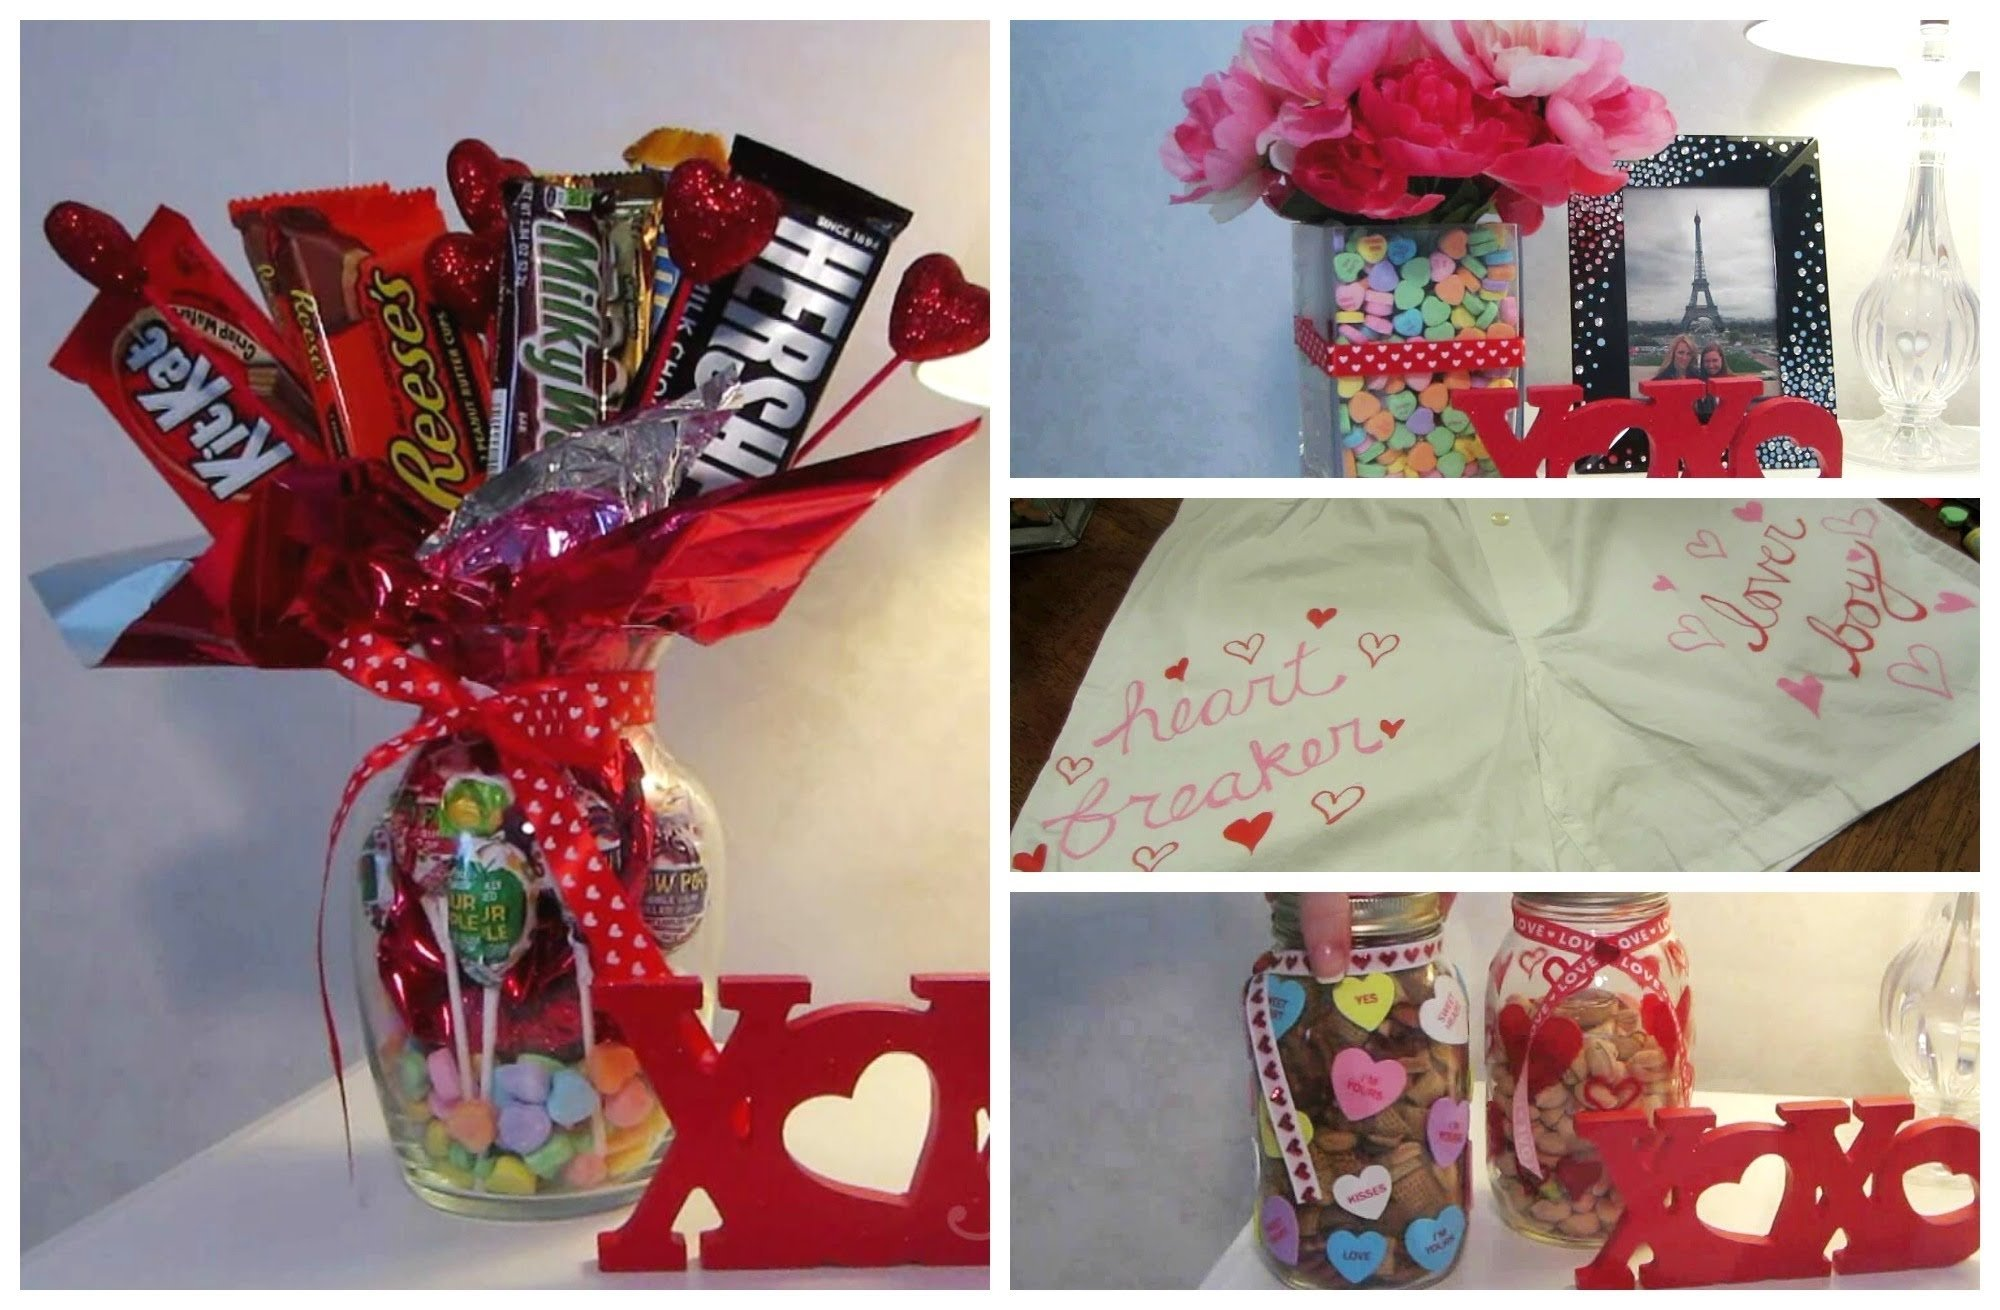 10 Awesome Valentines Day Ideas For Her Creative cute valentine diy gift ideas youtube 17 2020